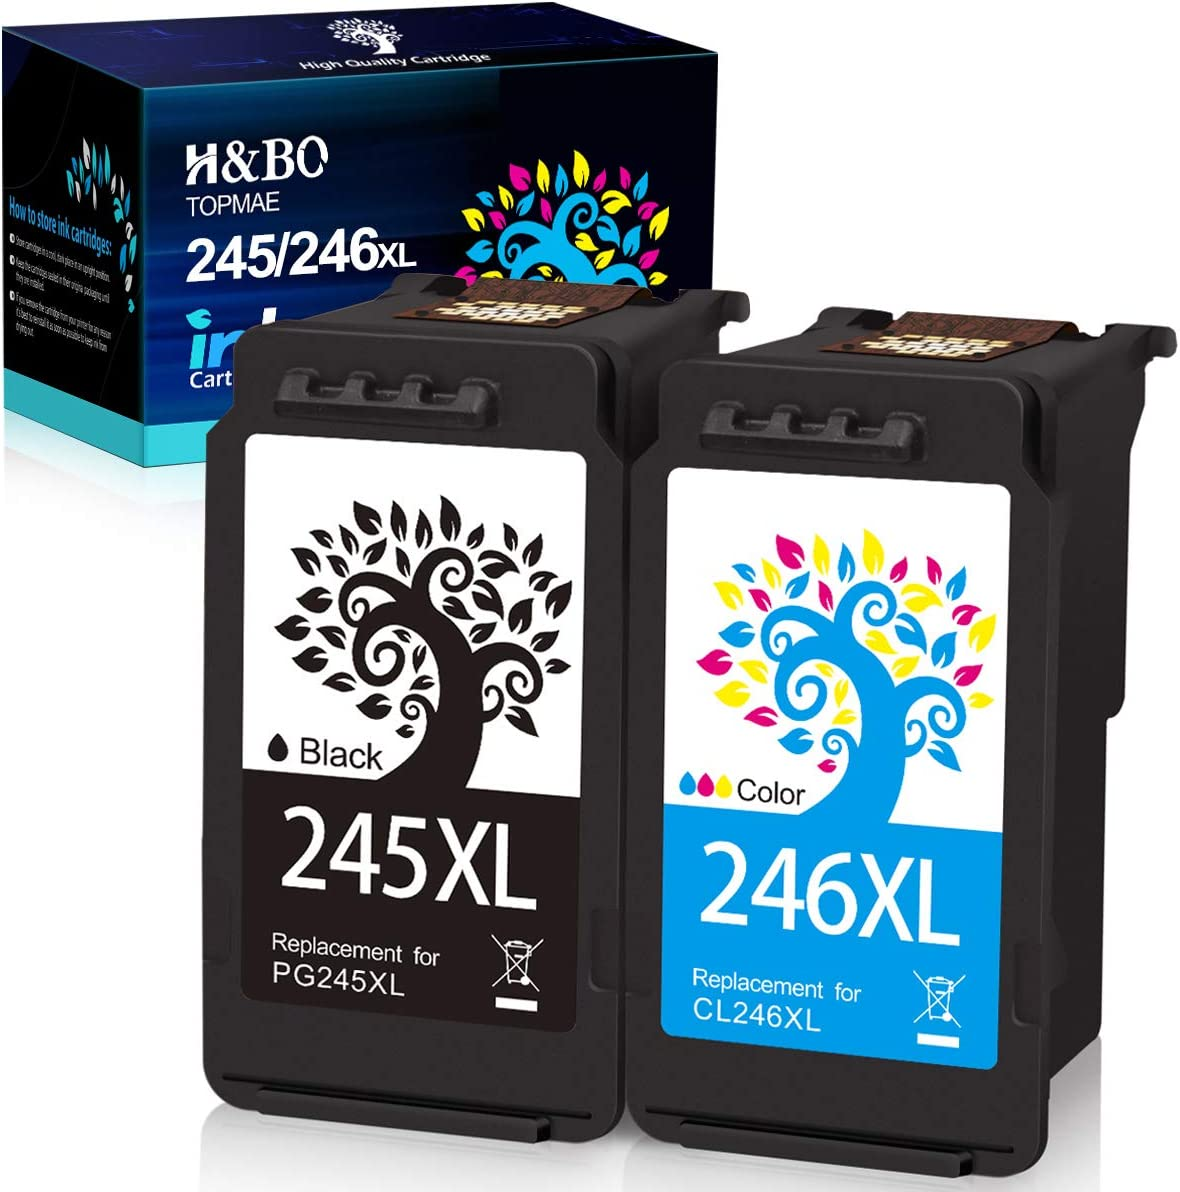 H&BO TOPMAE Remanufactured Ink Cartridges Replacement for Canon Ink cartridges 245 and 246 PG-245 CL-246 PG-243 CL-244 Used for PIXMA TS202 TS3120 TR4520 IP2820 MX490 MX492 (1 Black +1 Tri-Color)